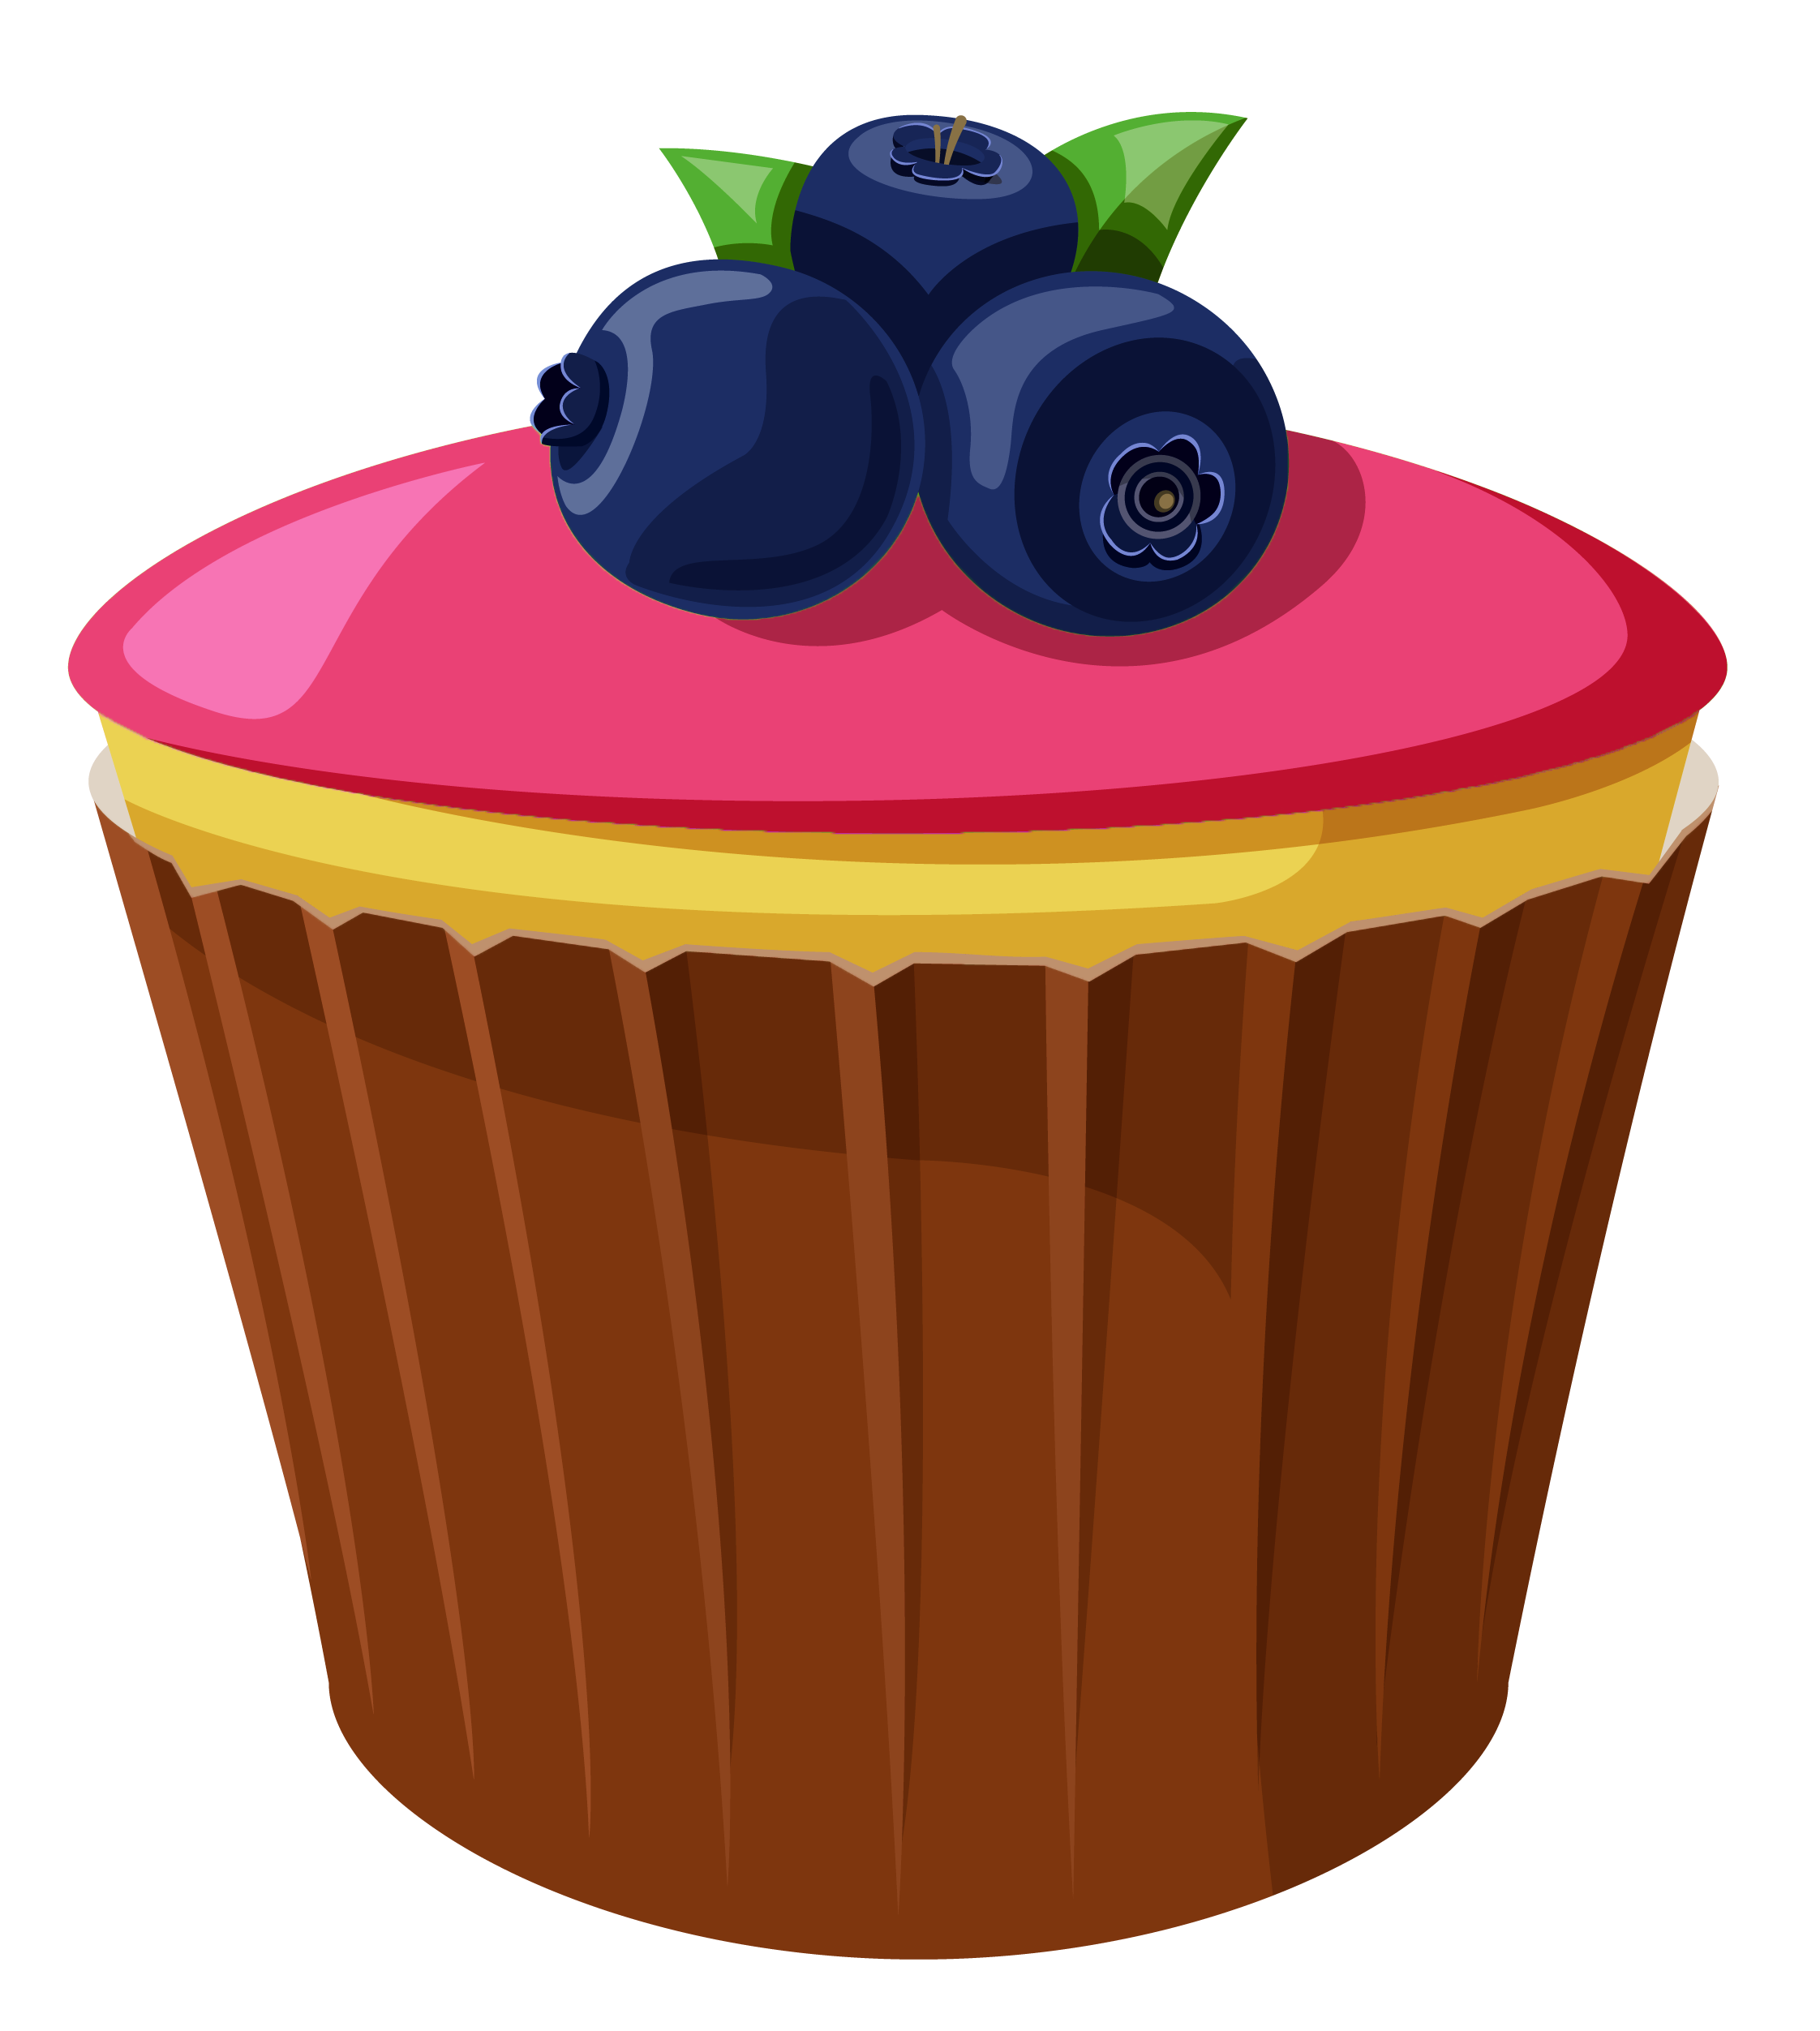 Blueberry Muffin clipart transparent Size Cake full with